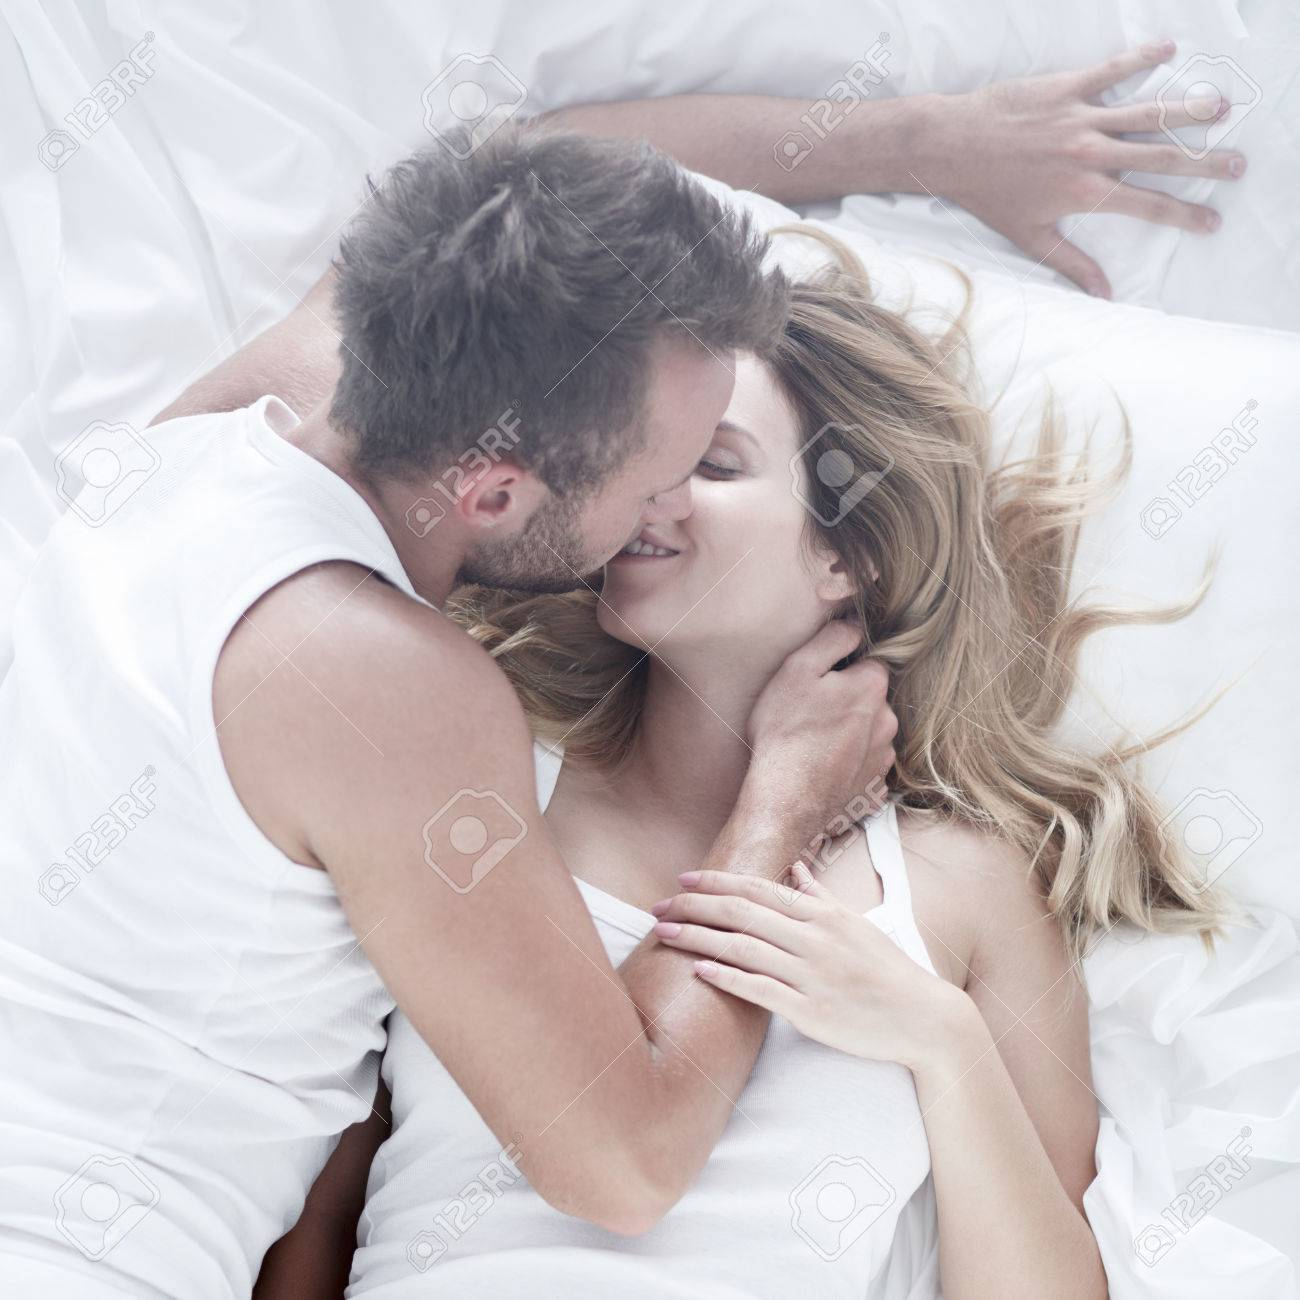 Image Of Couple During Passionate Foreplay In Bed Stock Photo 58953968